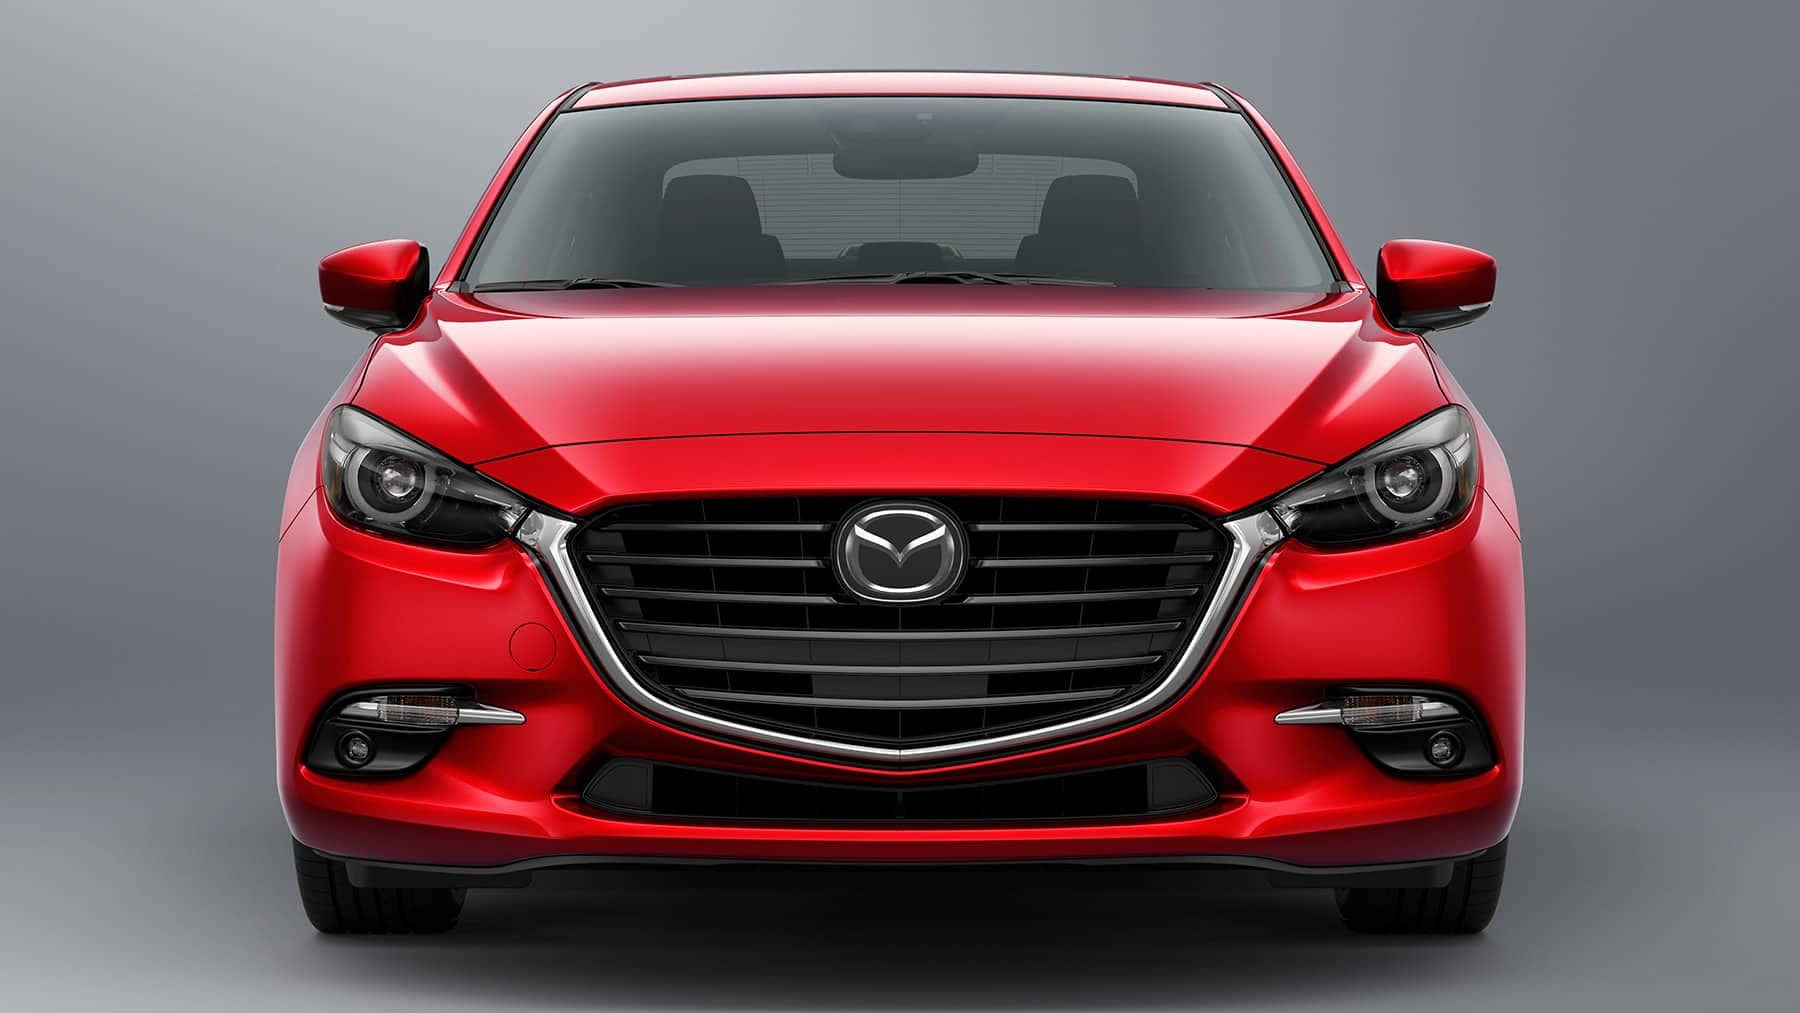 https://di-uploads-development.dealerinspire.com/whittenmazda/uploads/2018/01/2018-mazda-3-sedan-car-front-soul-red.jpg